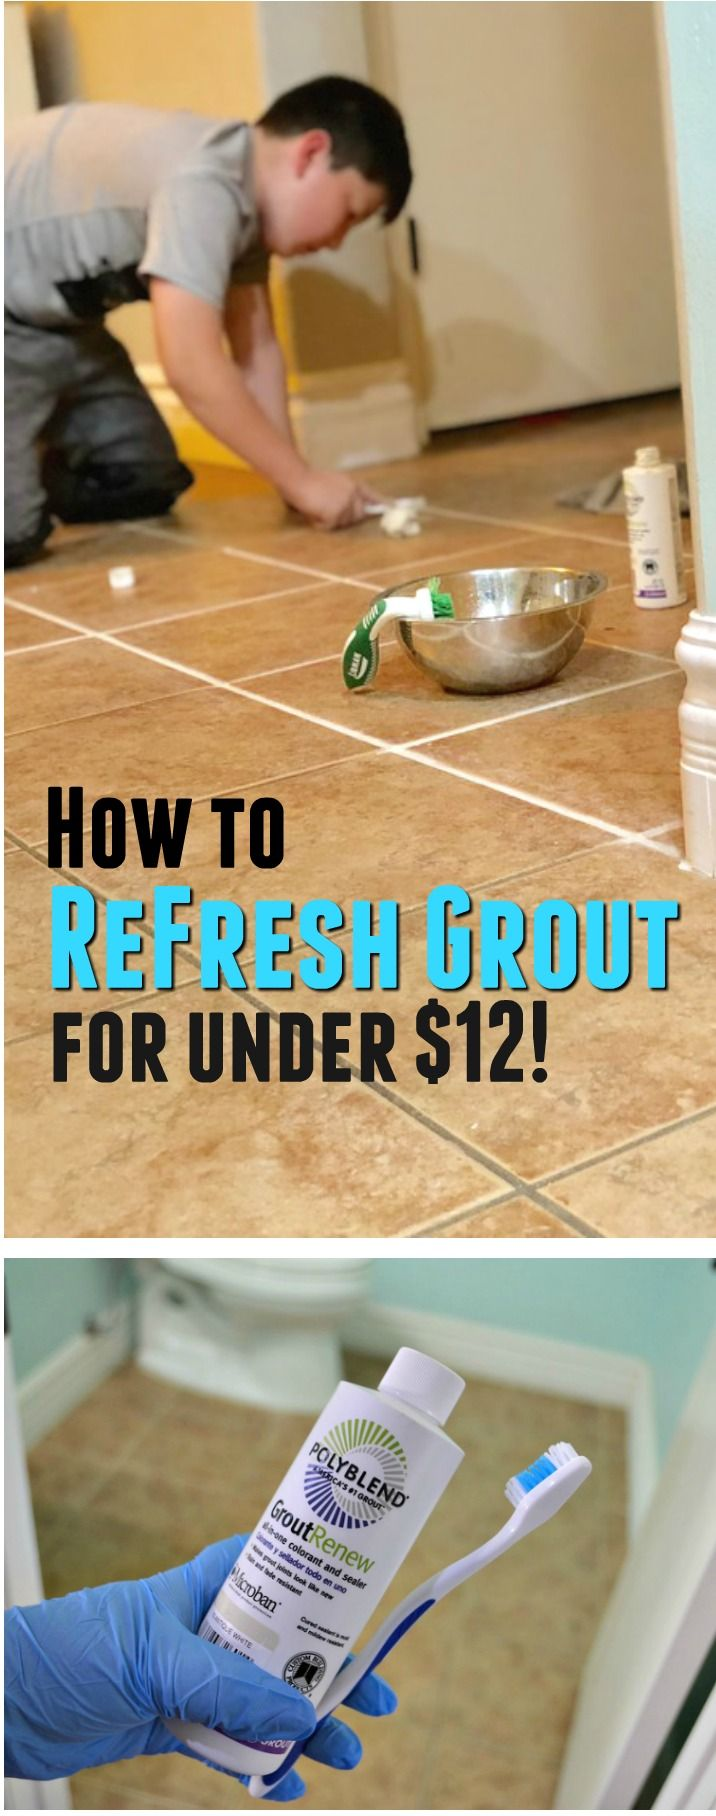 Got dingy grout hereus how to refresh your tile grout for under